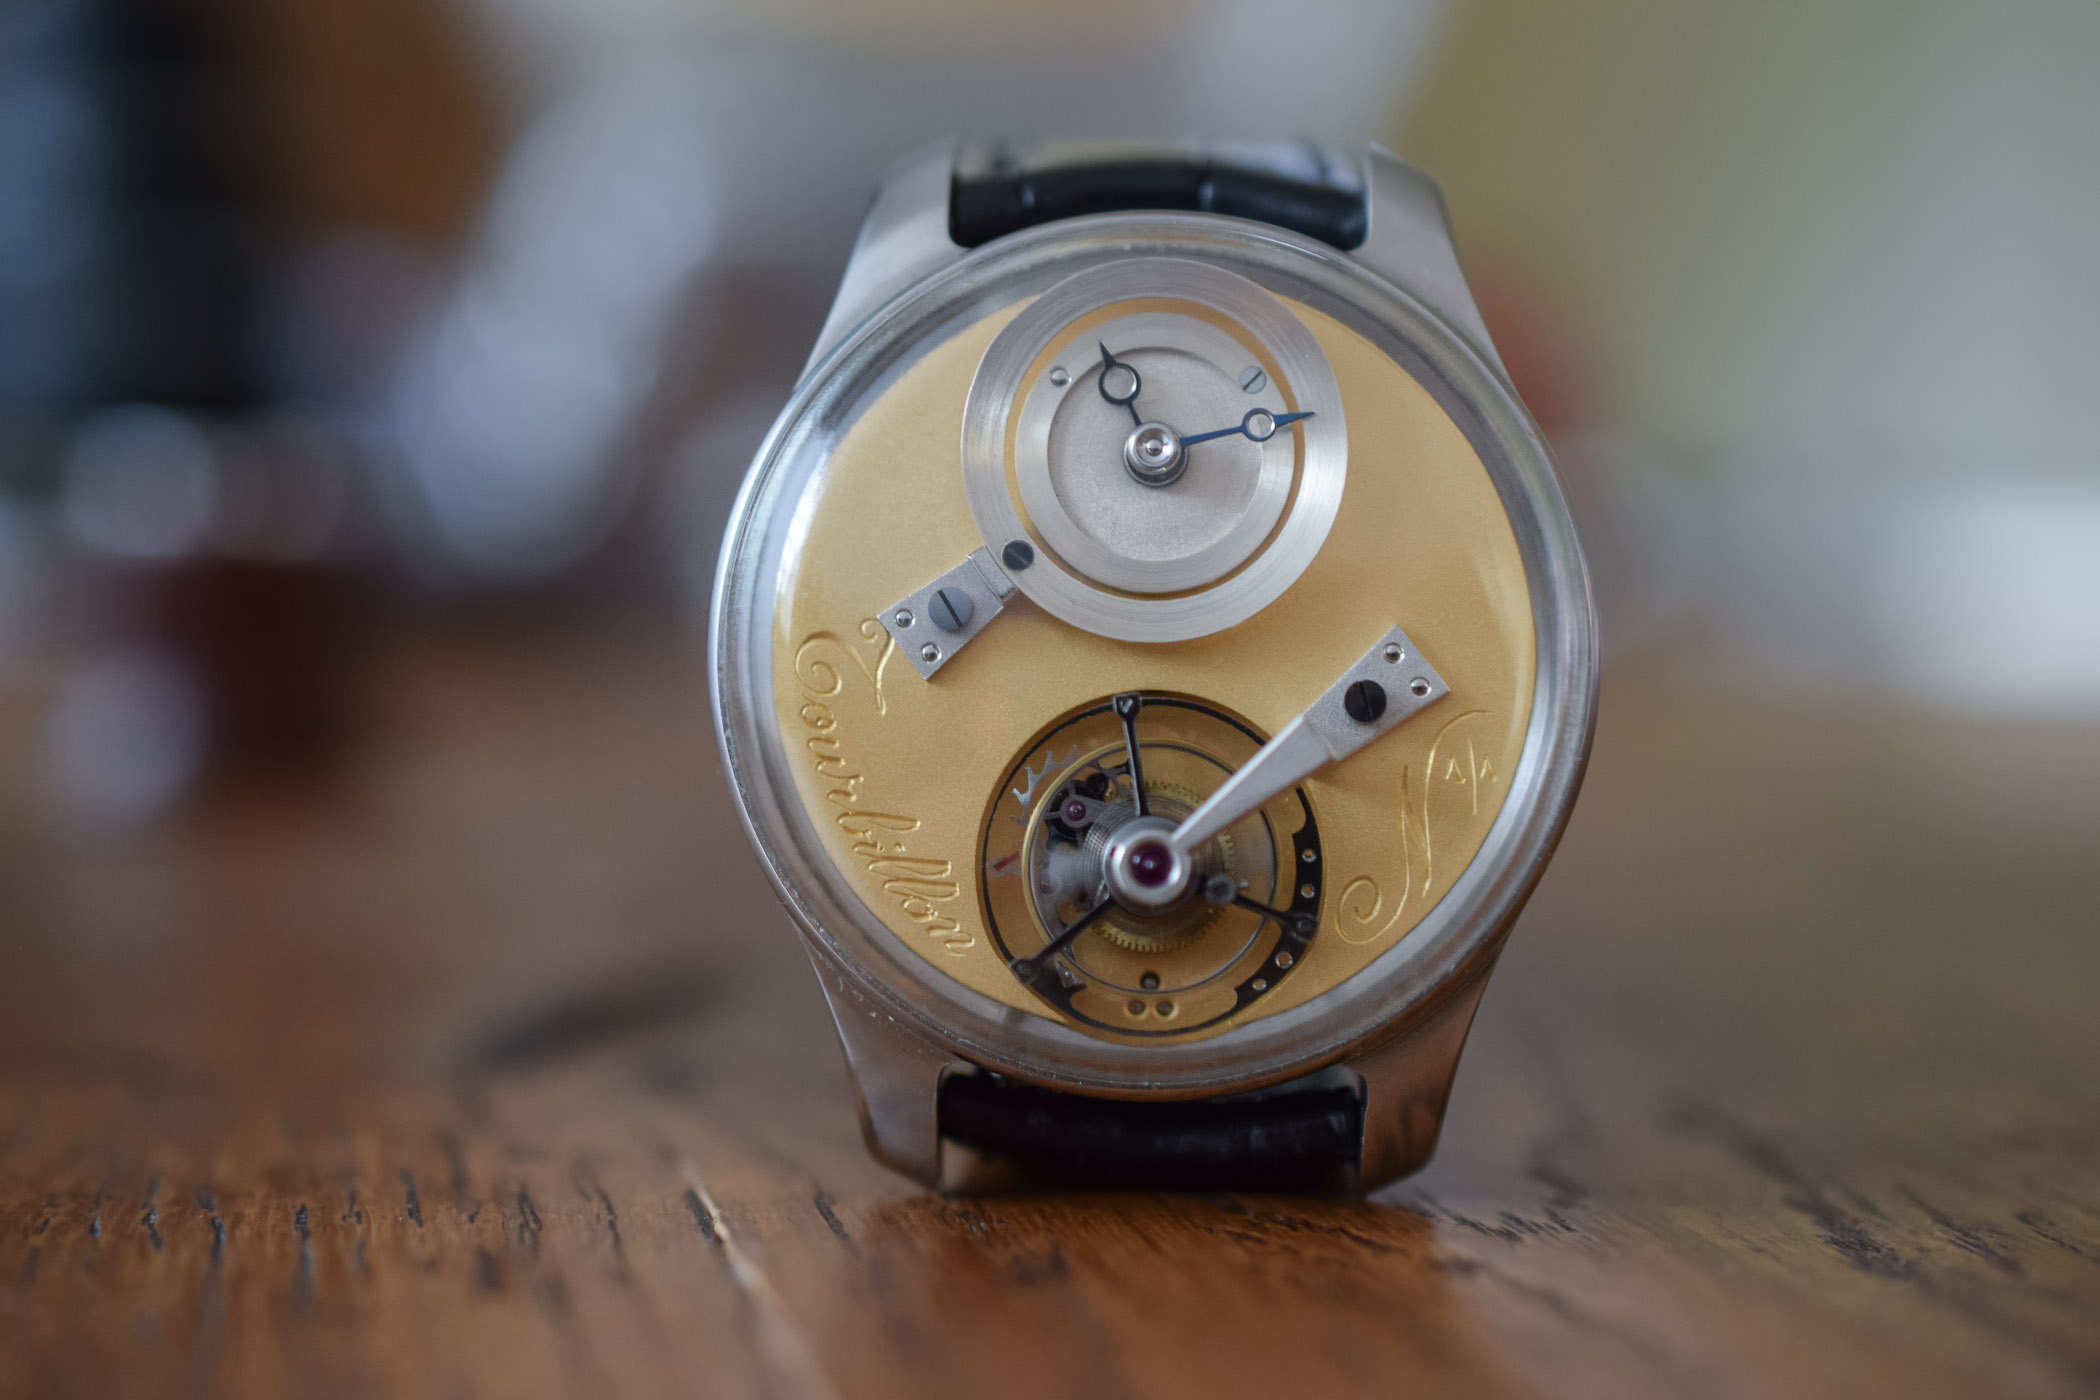 Montre d'Ecole Tourbillon by Remy Cools - Young Talent